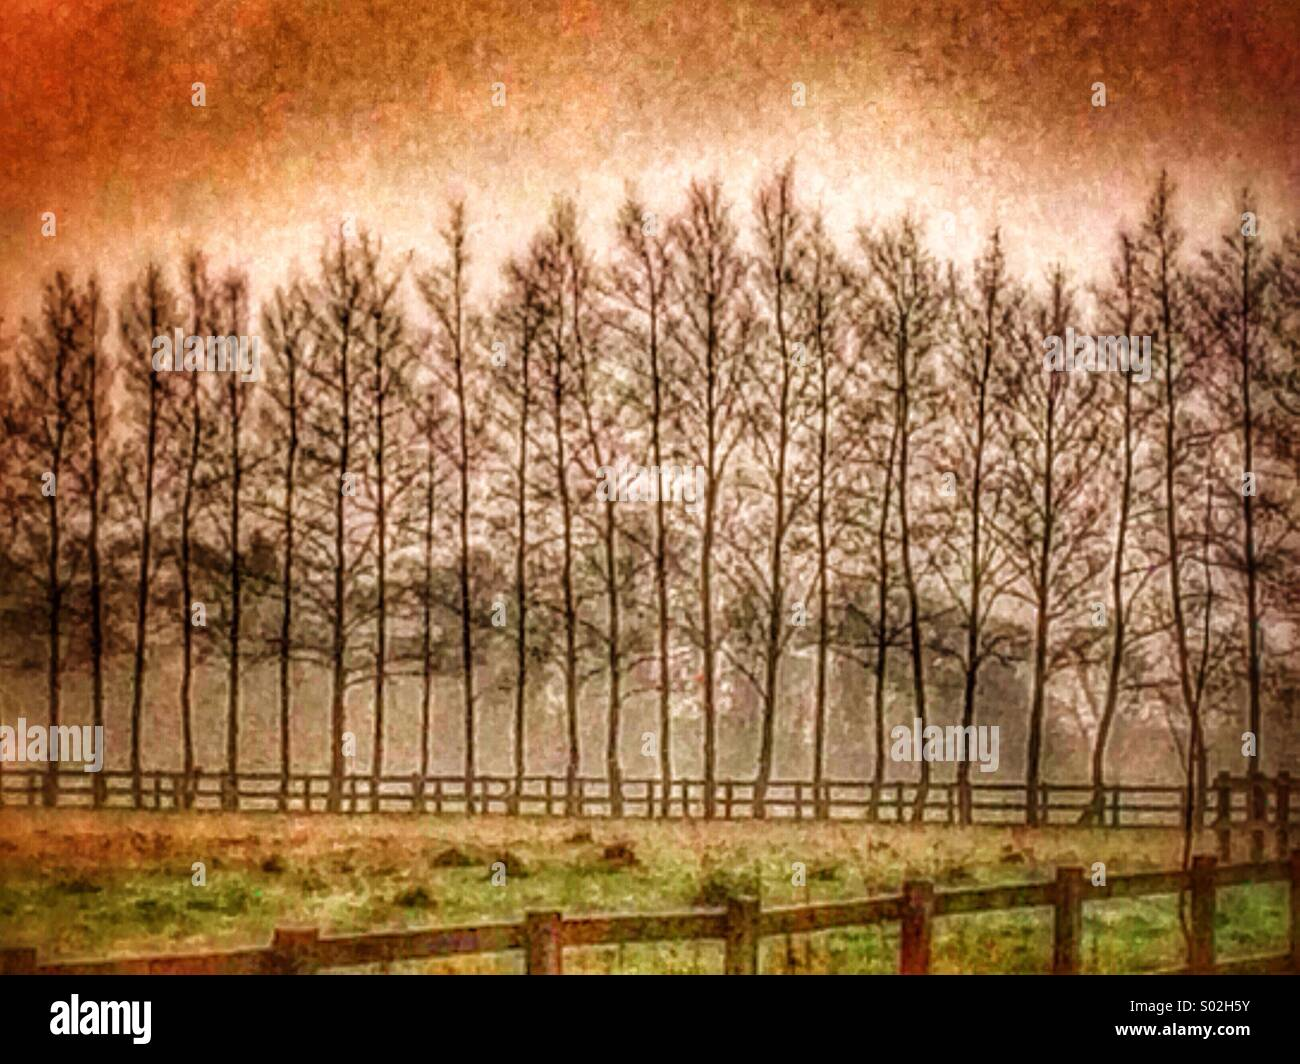 A line of Birch trees at sunset - Stock Image